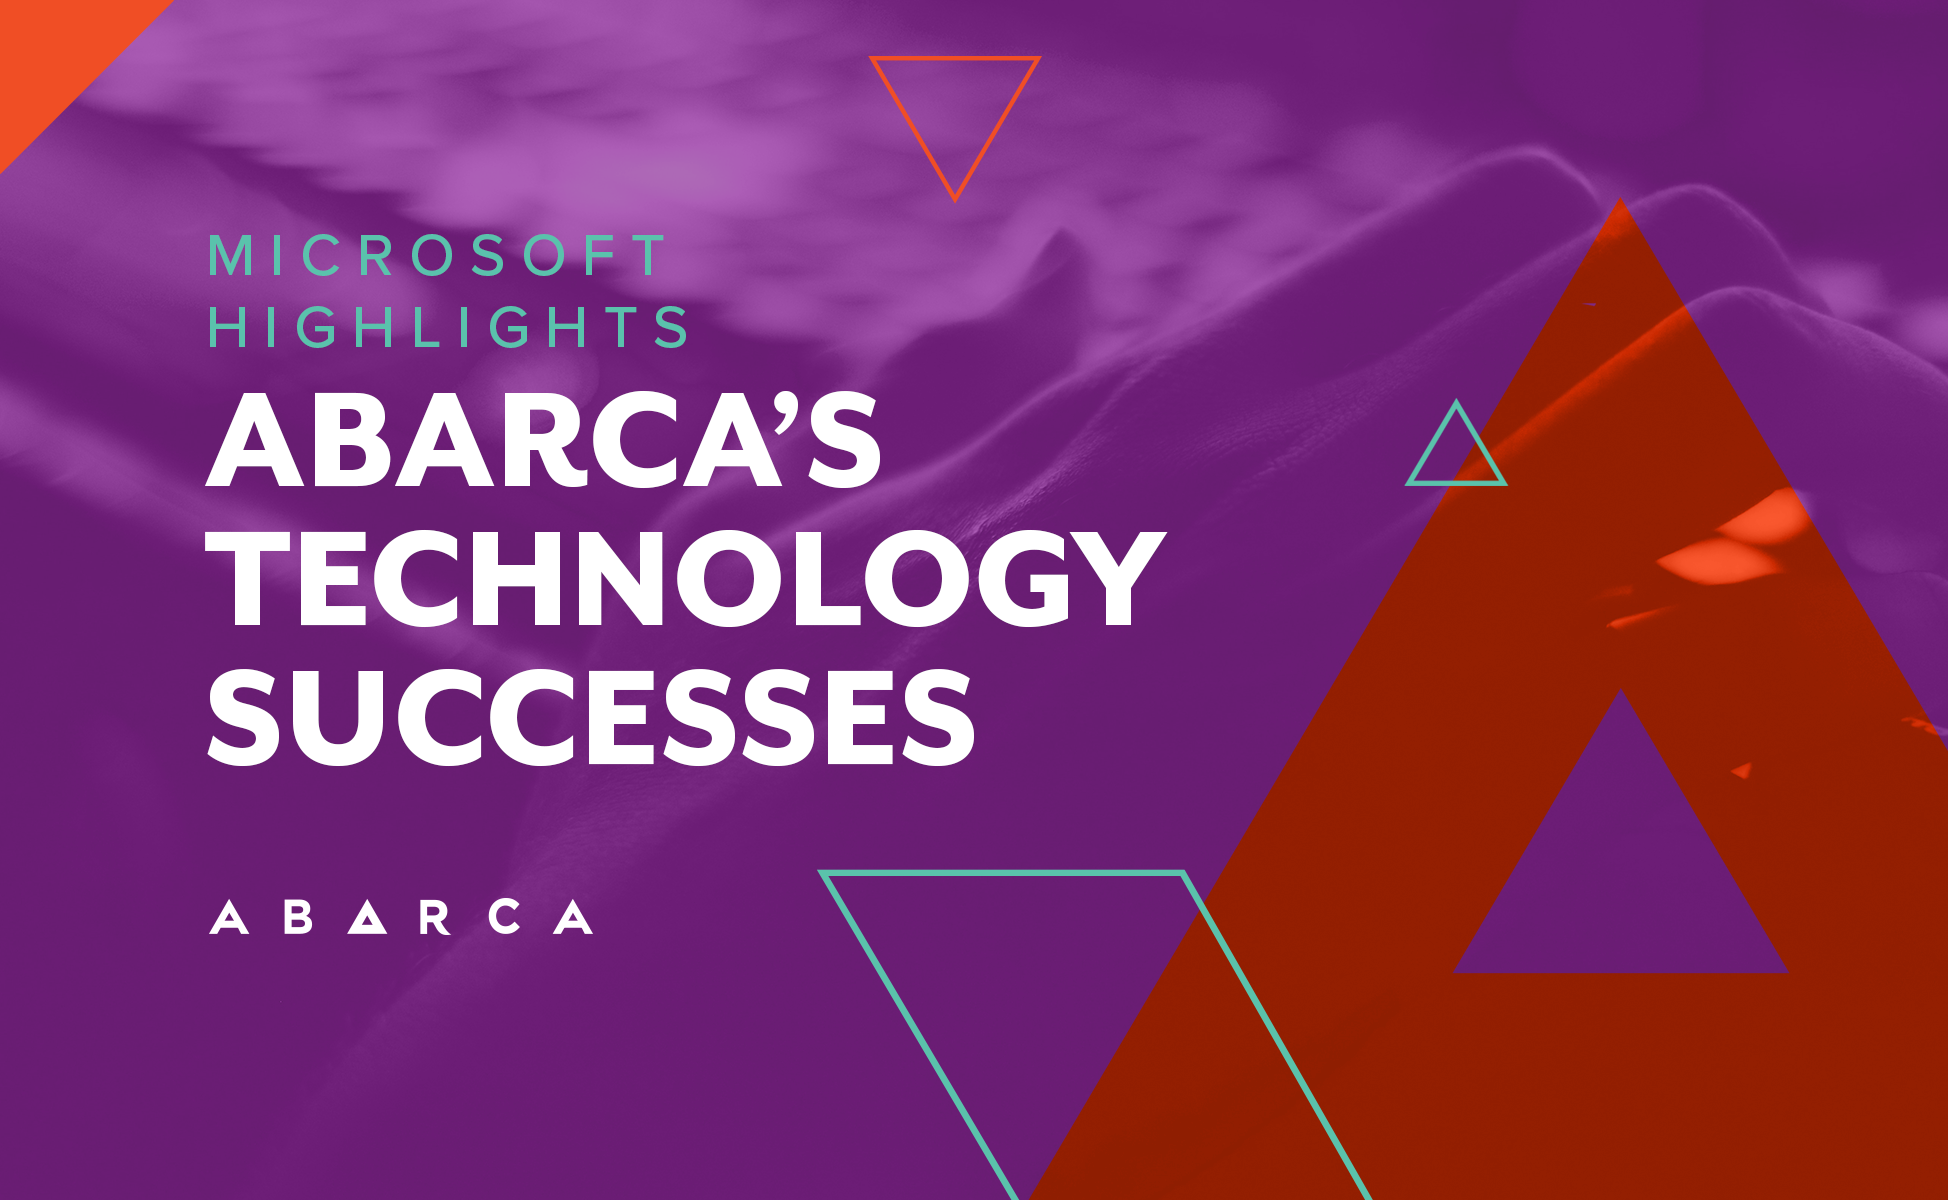 Microsoft highlights Abarca's technology successes.